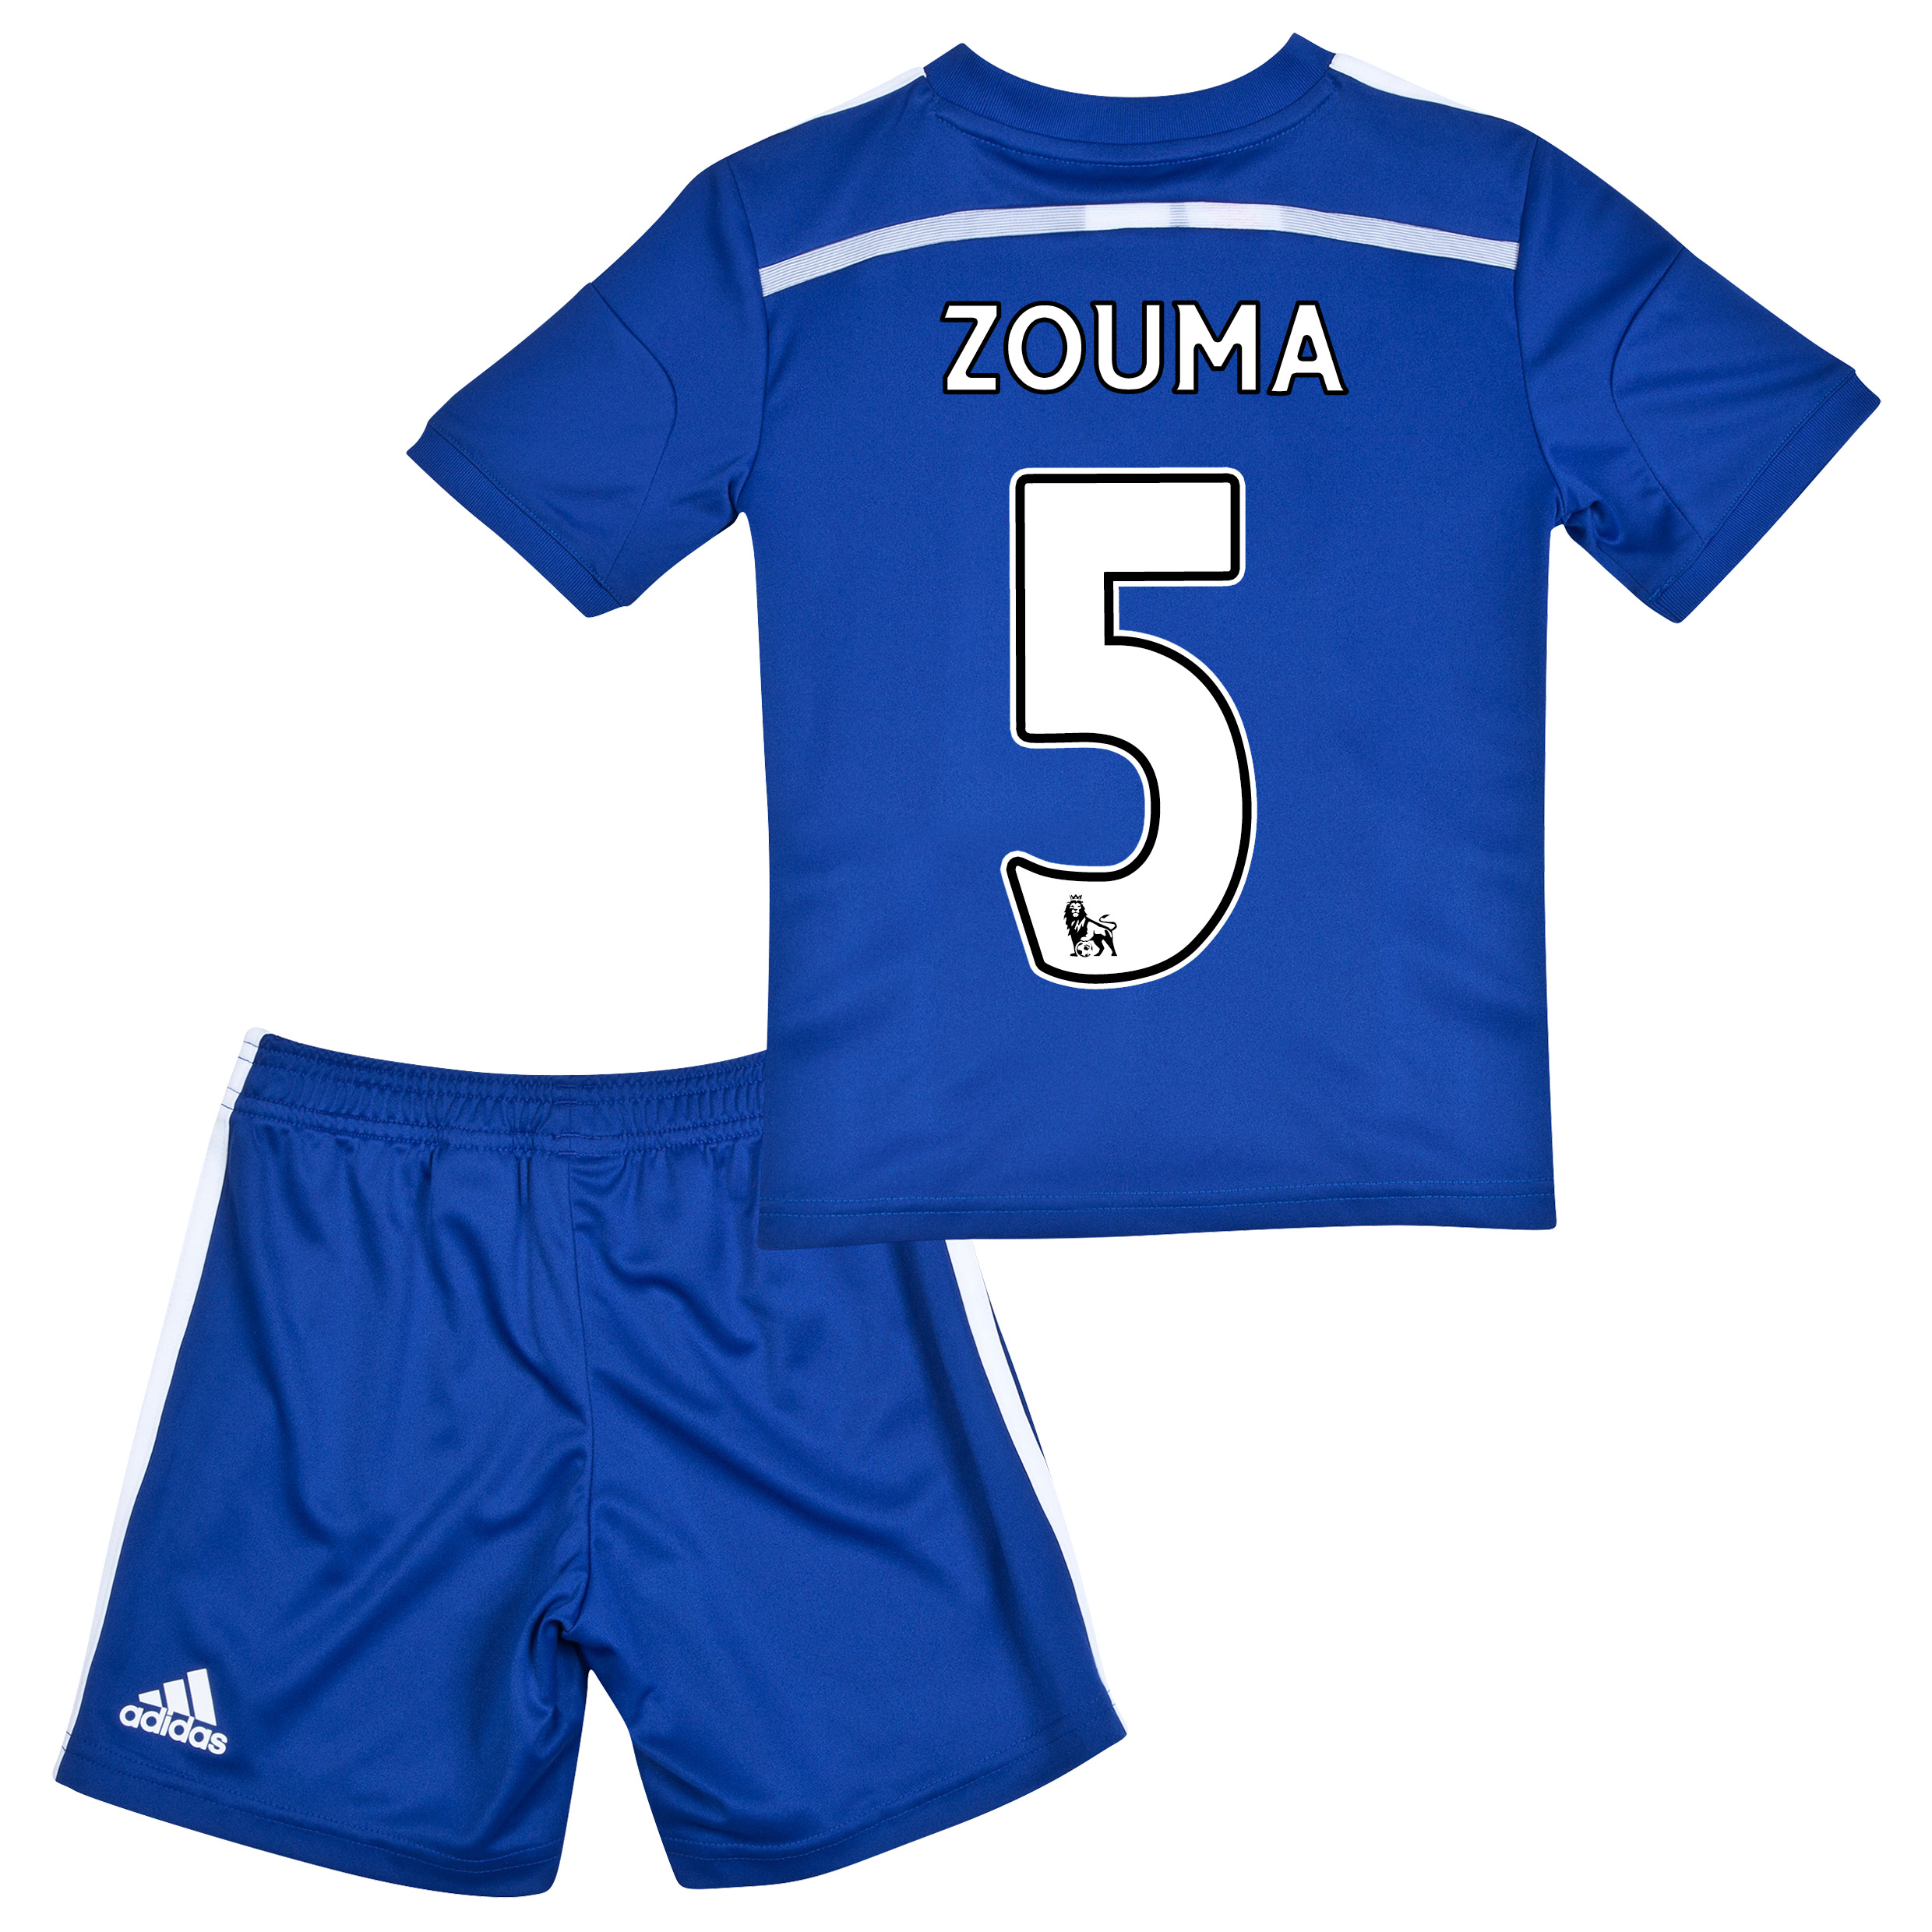 Chelsea Home Mini Kit 2014/15 with ZOUMA 5 printing